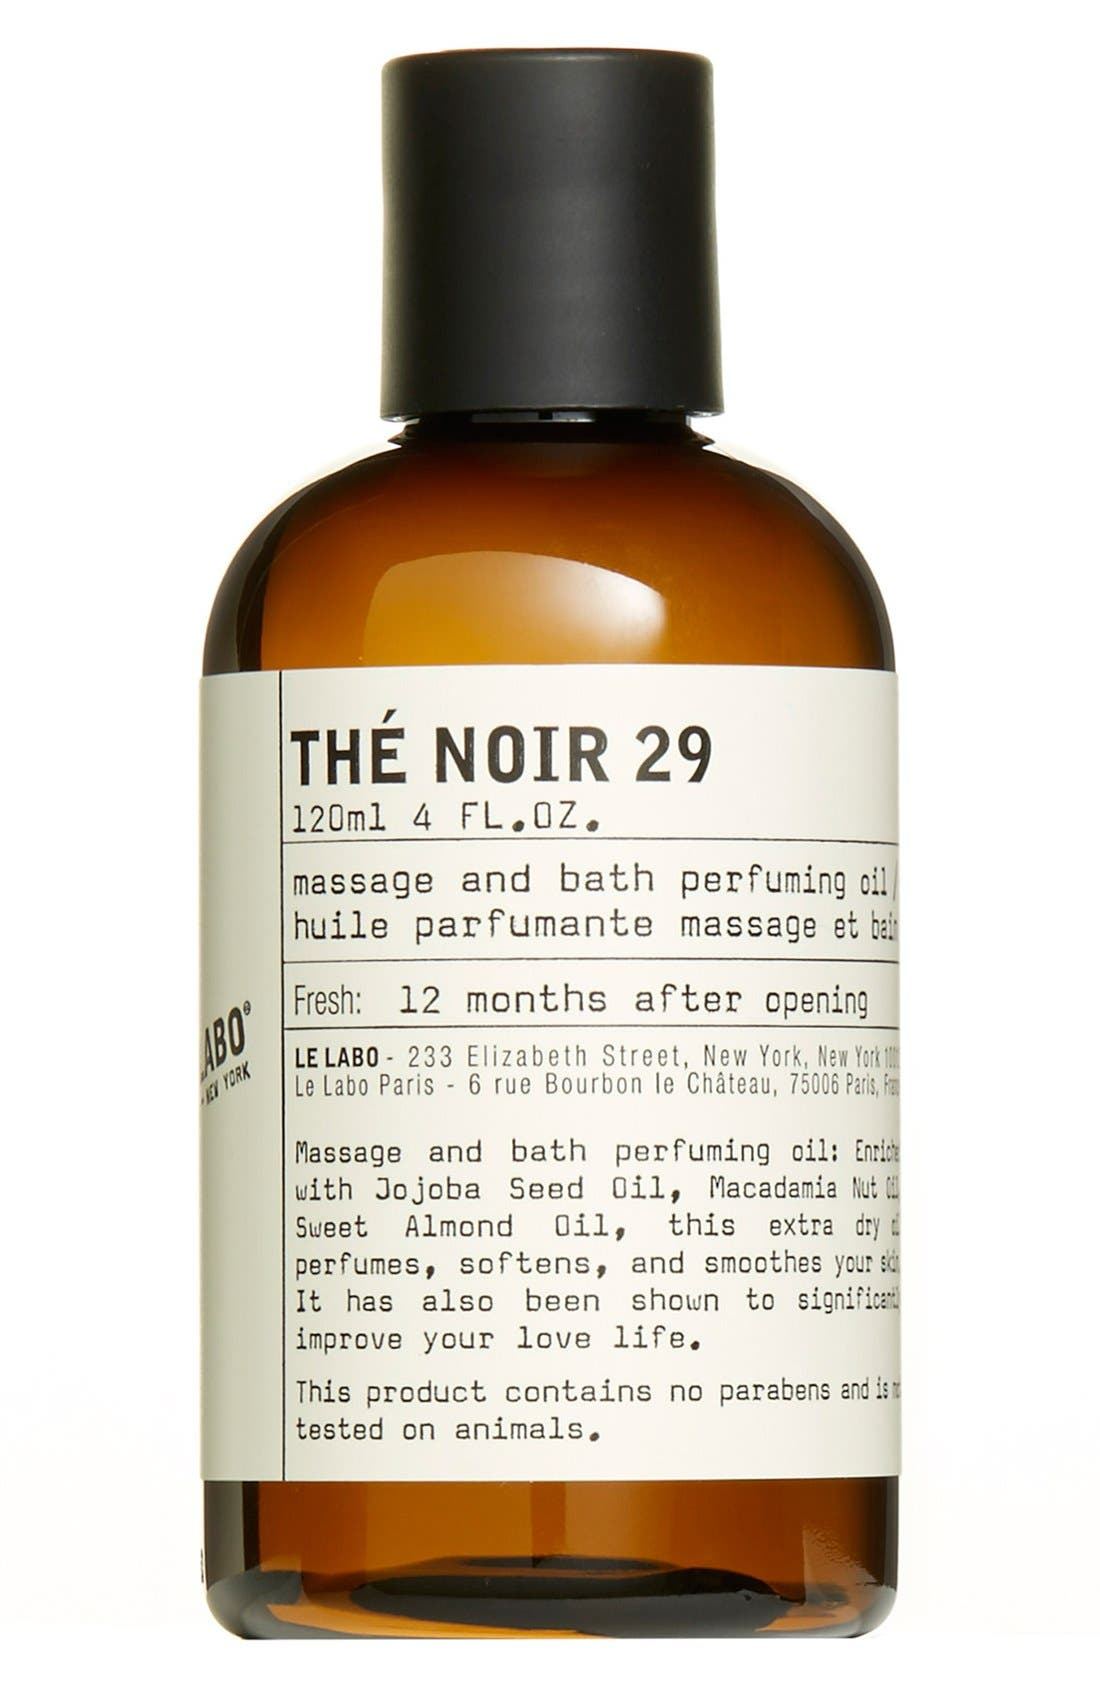 Le Labo 'Thé Noir 29' Body Oil